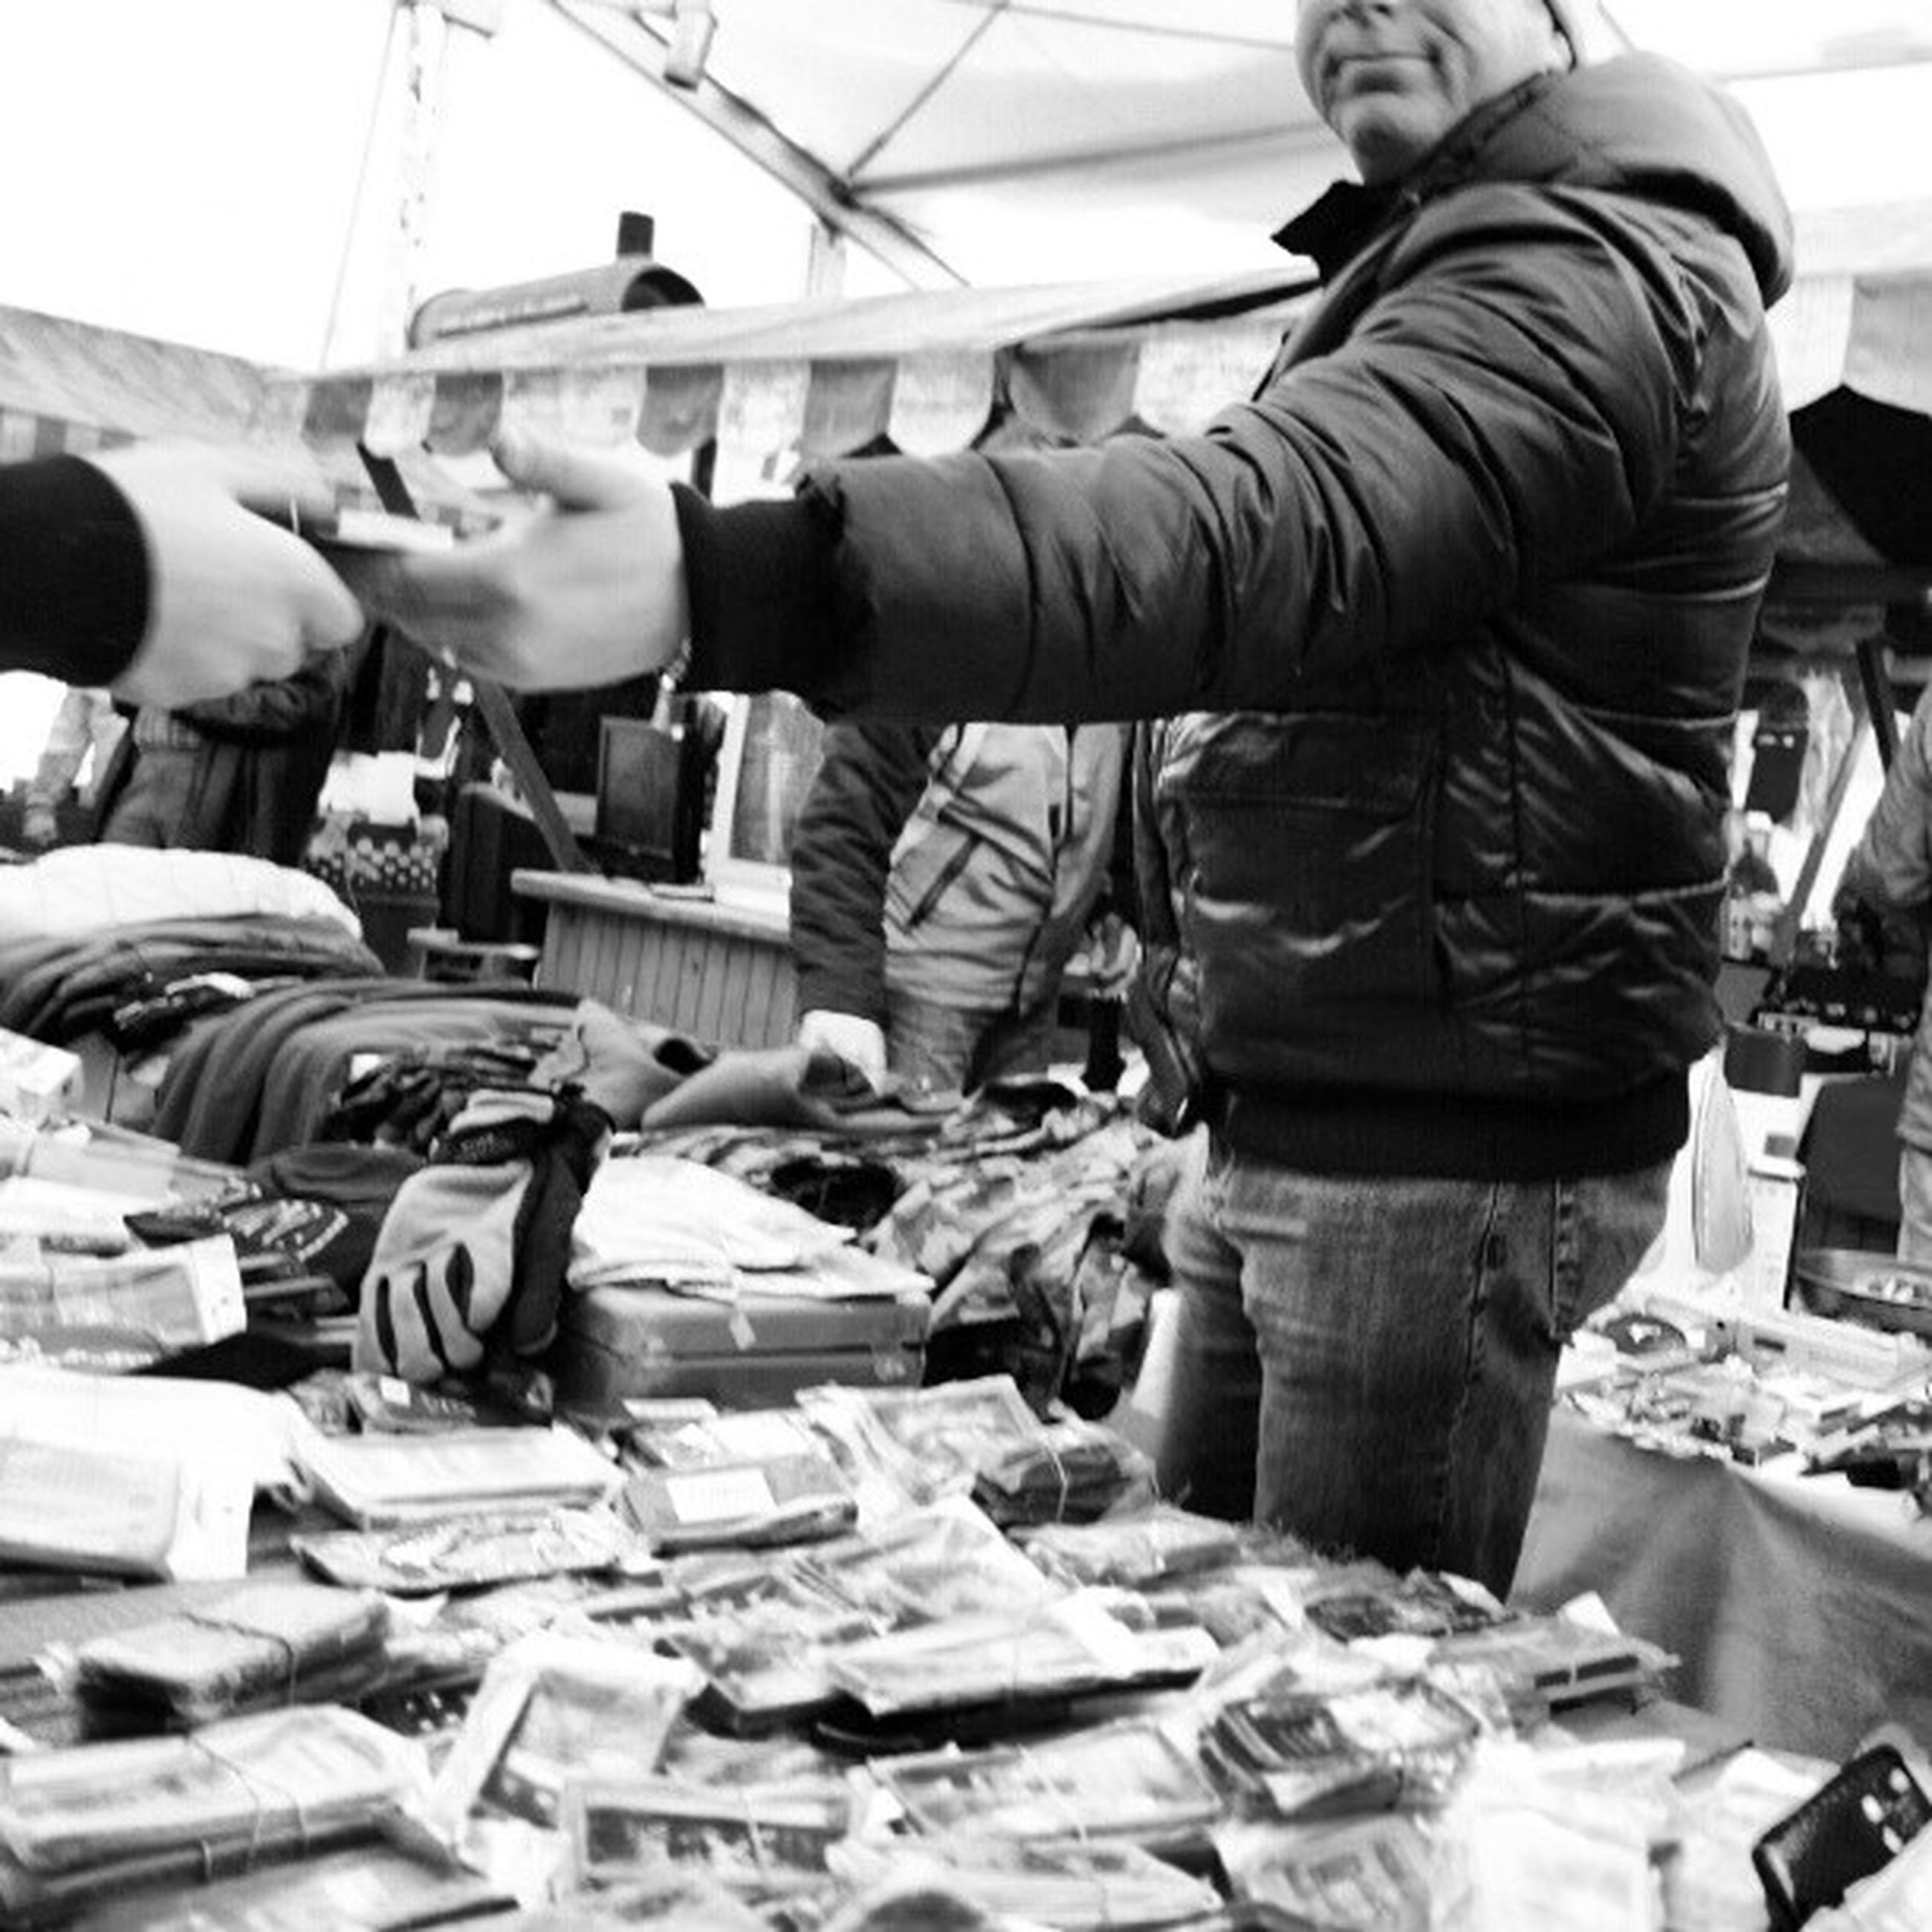 indoors, men, occupation, food and drink, working, lifestyles, animal themes, large group of objects, abundance, food, retail, for sale, domestic animals, leisure activity, person, market stall, incidental people, day